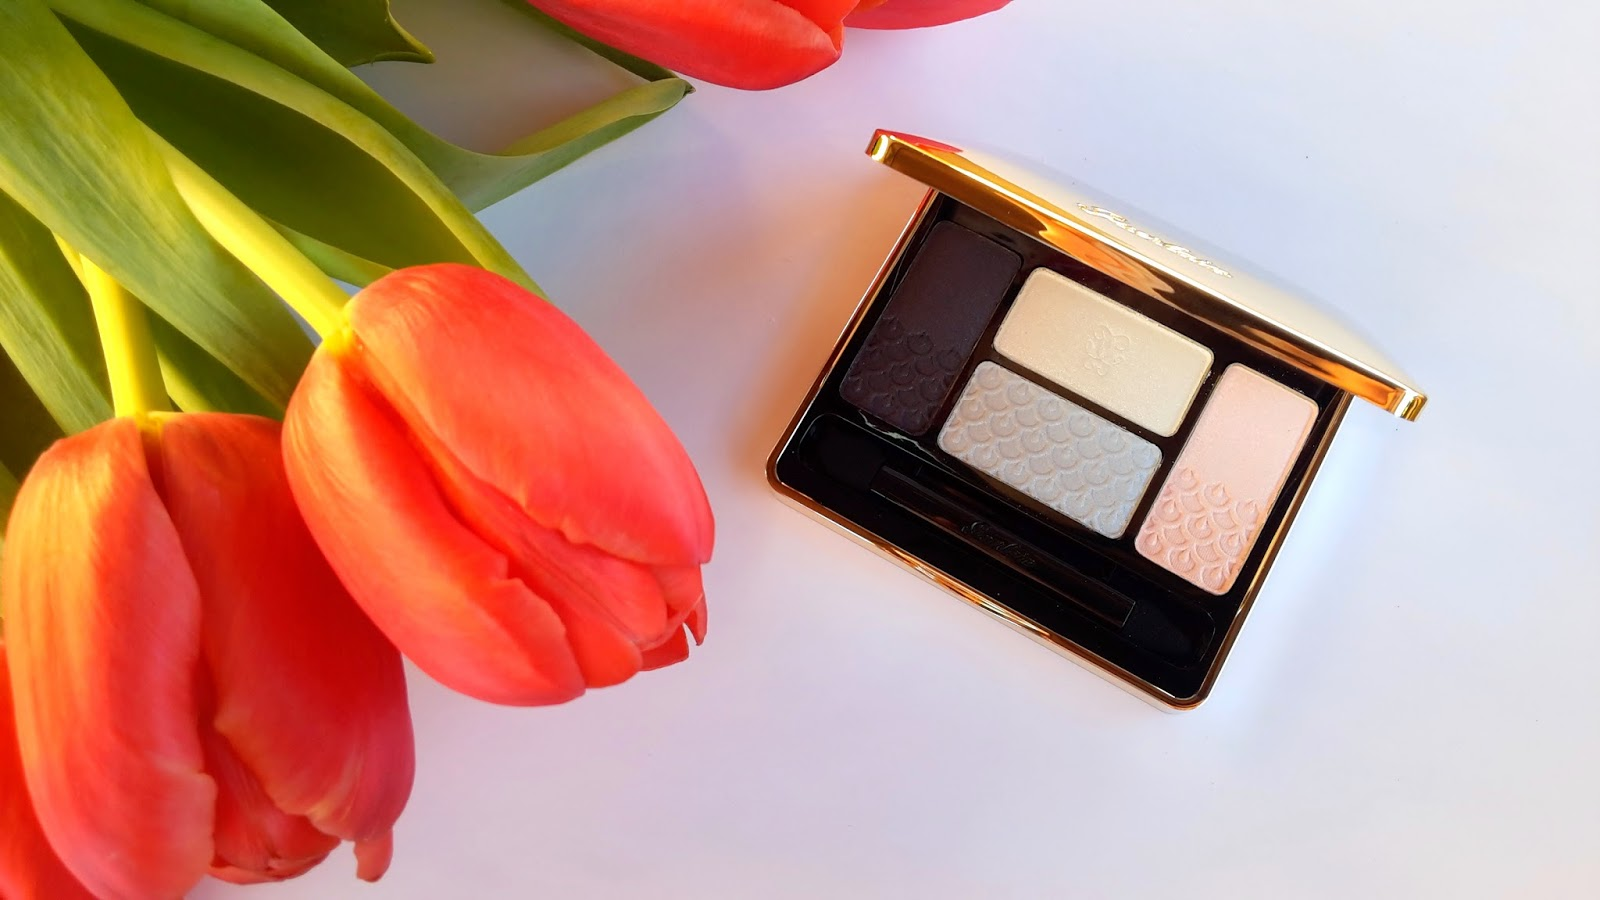 guerlain make up 2015, guerlain spring collection 2015, guerlain make up primavera 2015 collezione, guerlain spring 2015 collection les tendres, guerlain ecrin 4 couleurs eyeshadow palette